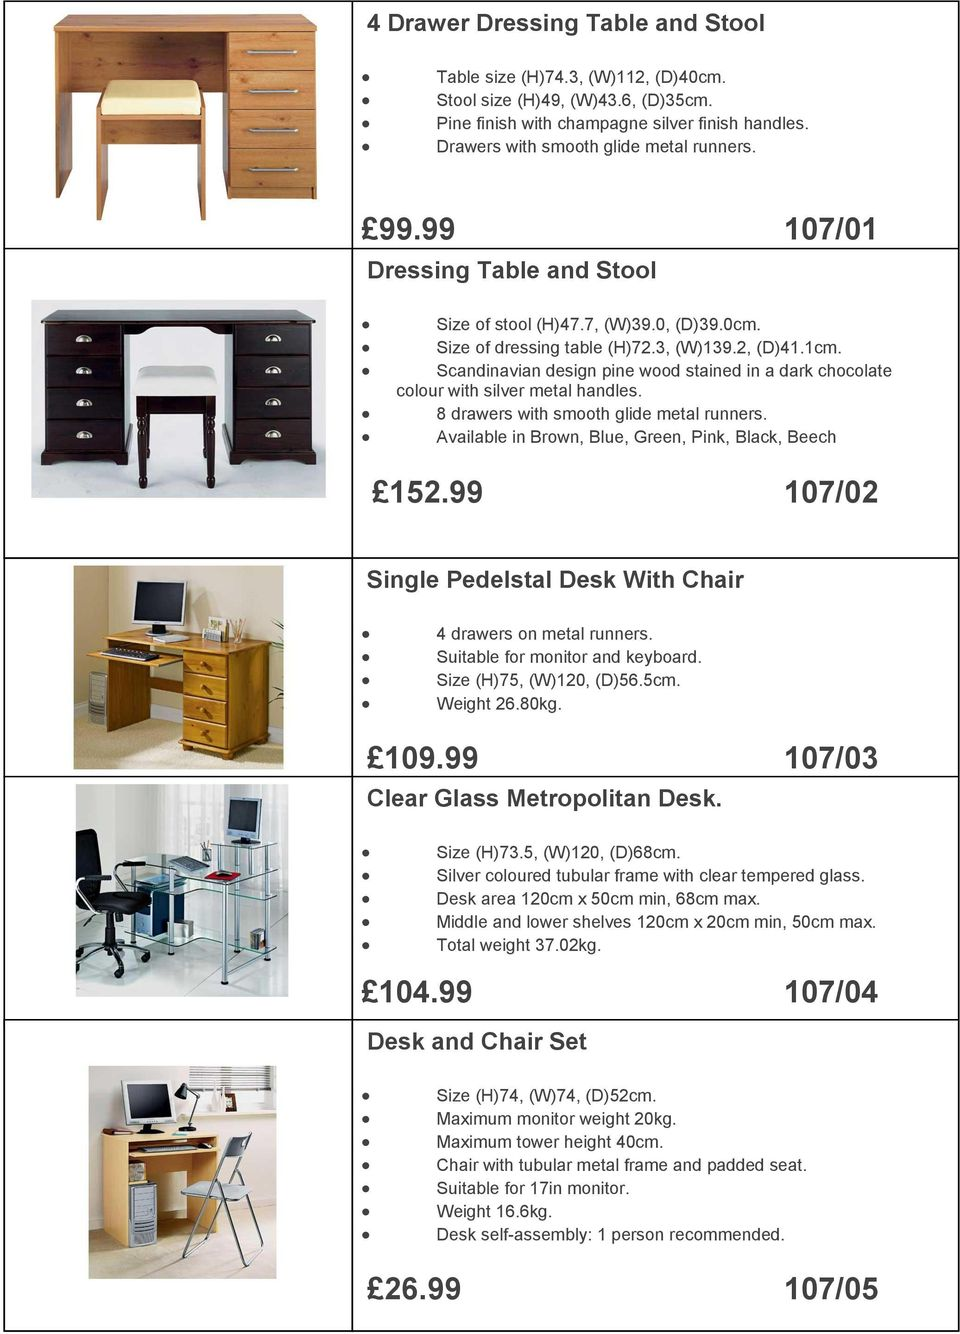 or left untreated. 99.99 69.99 107/01 Continental Dressing Table Solid and Pine Stool Double Bed - Frame Only - Size of stool (H)47.7, (W)39.0, (D)39.0cm.